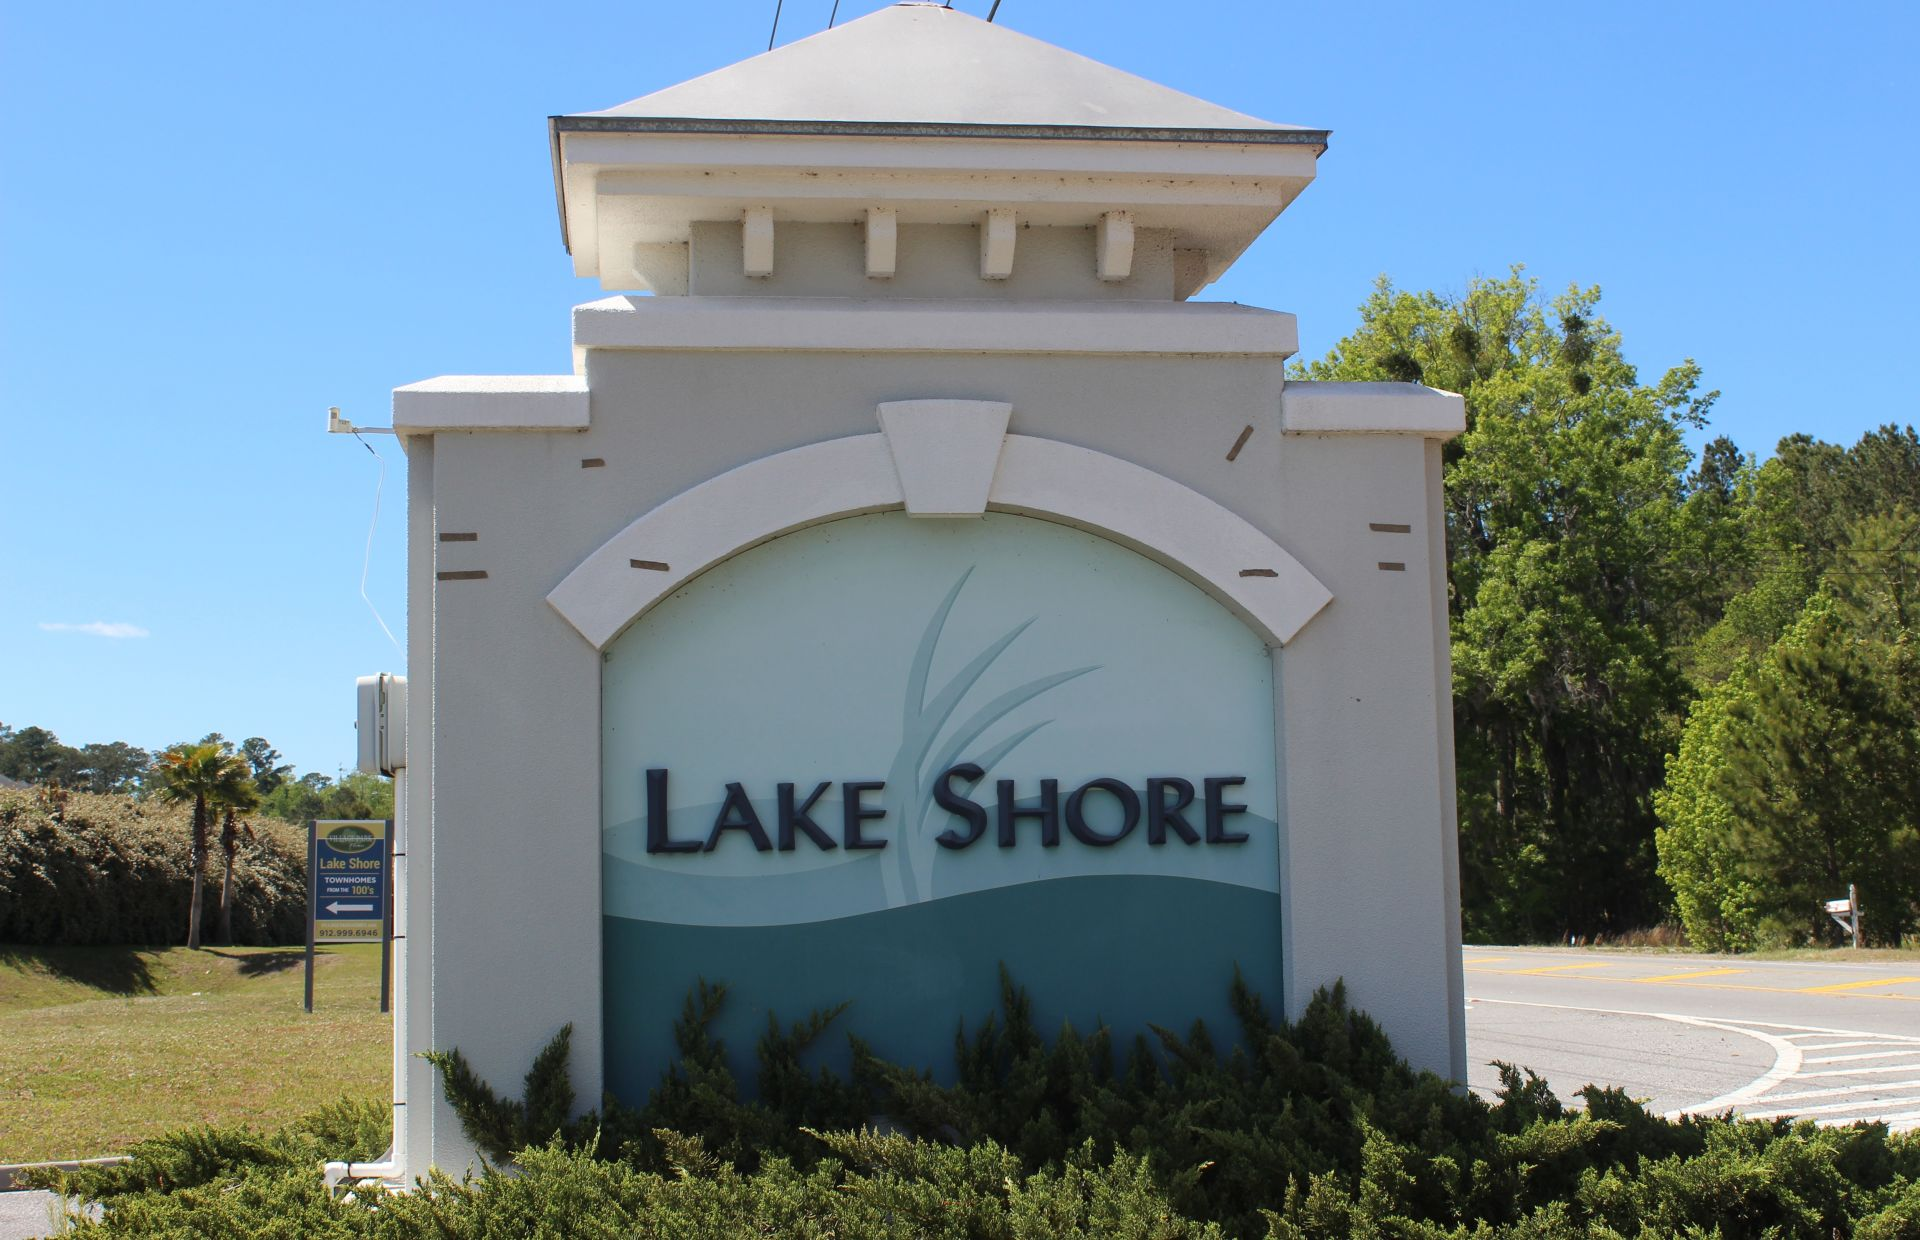 Homes For Sale in the Lake Shore Neighborhood in Port Wentworth GA